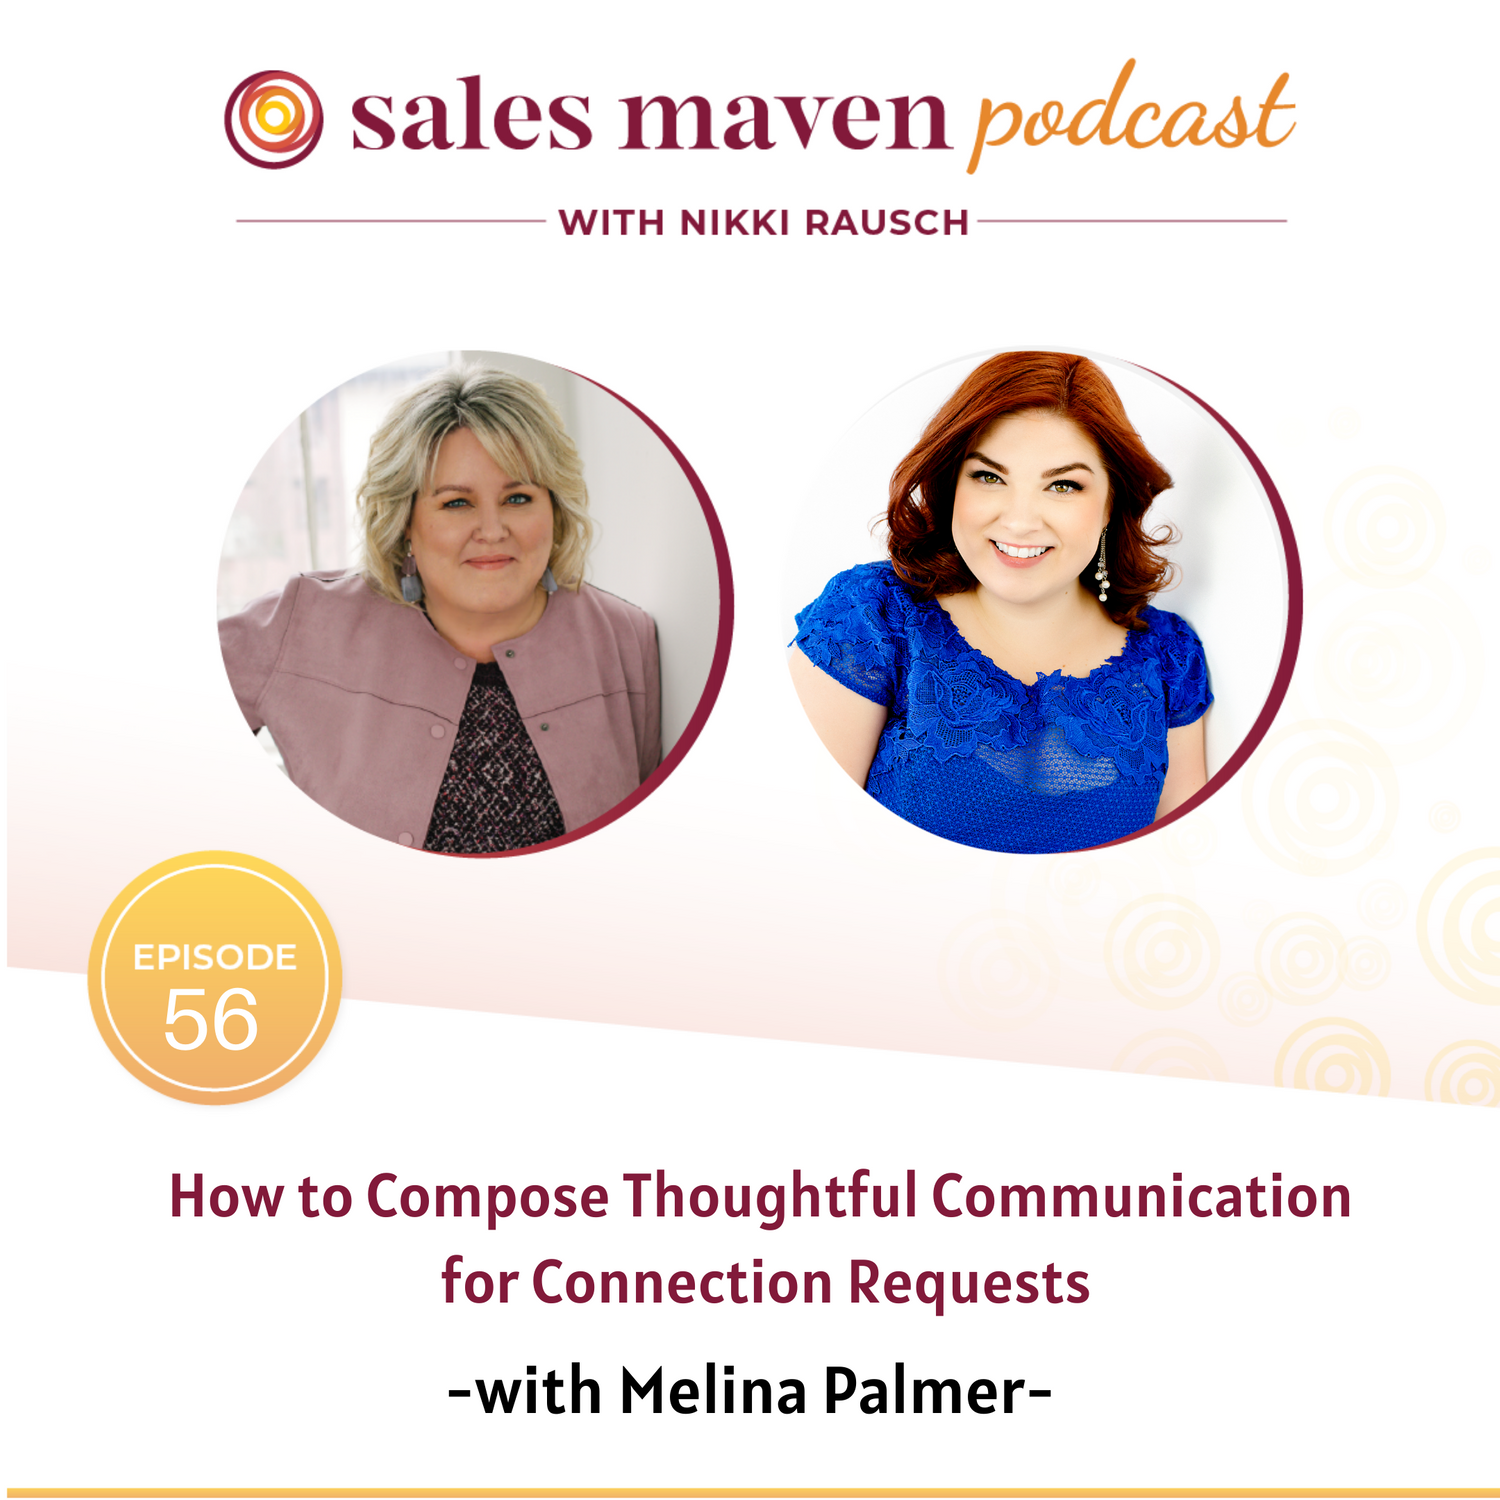 Sales Maven podcast - how to compost thoughtful communication for connection requests with Melina Palmer